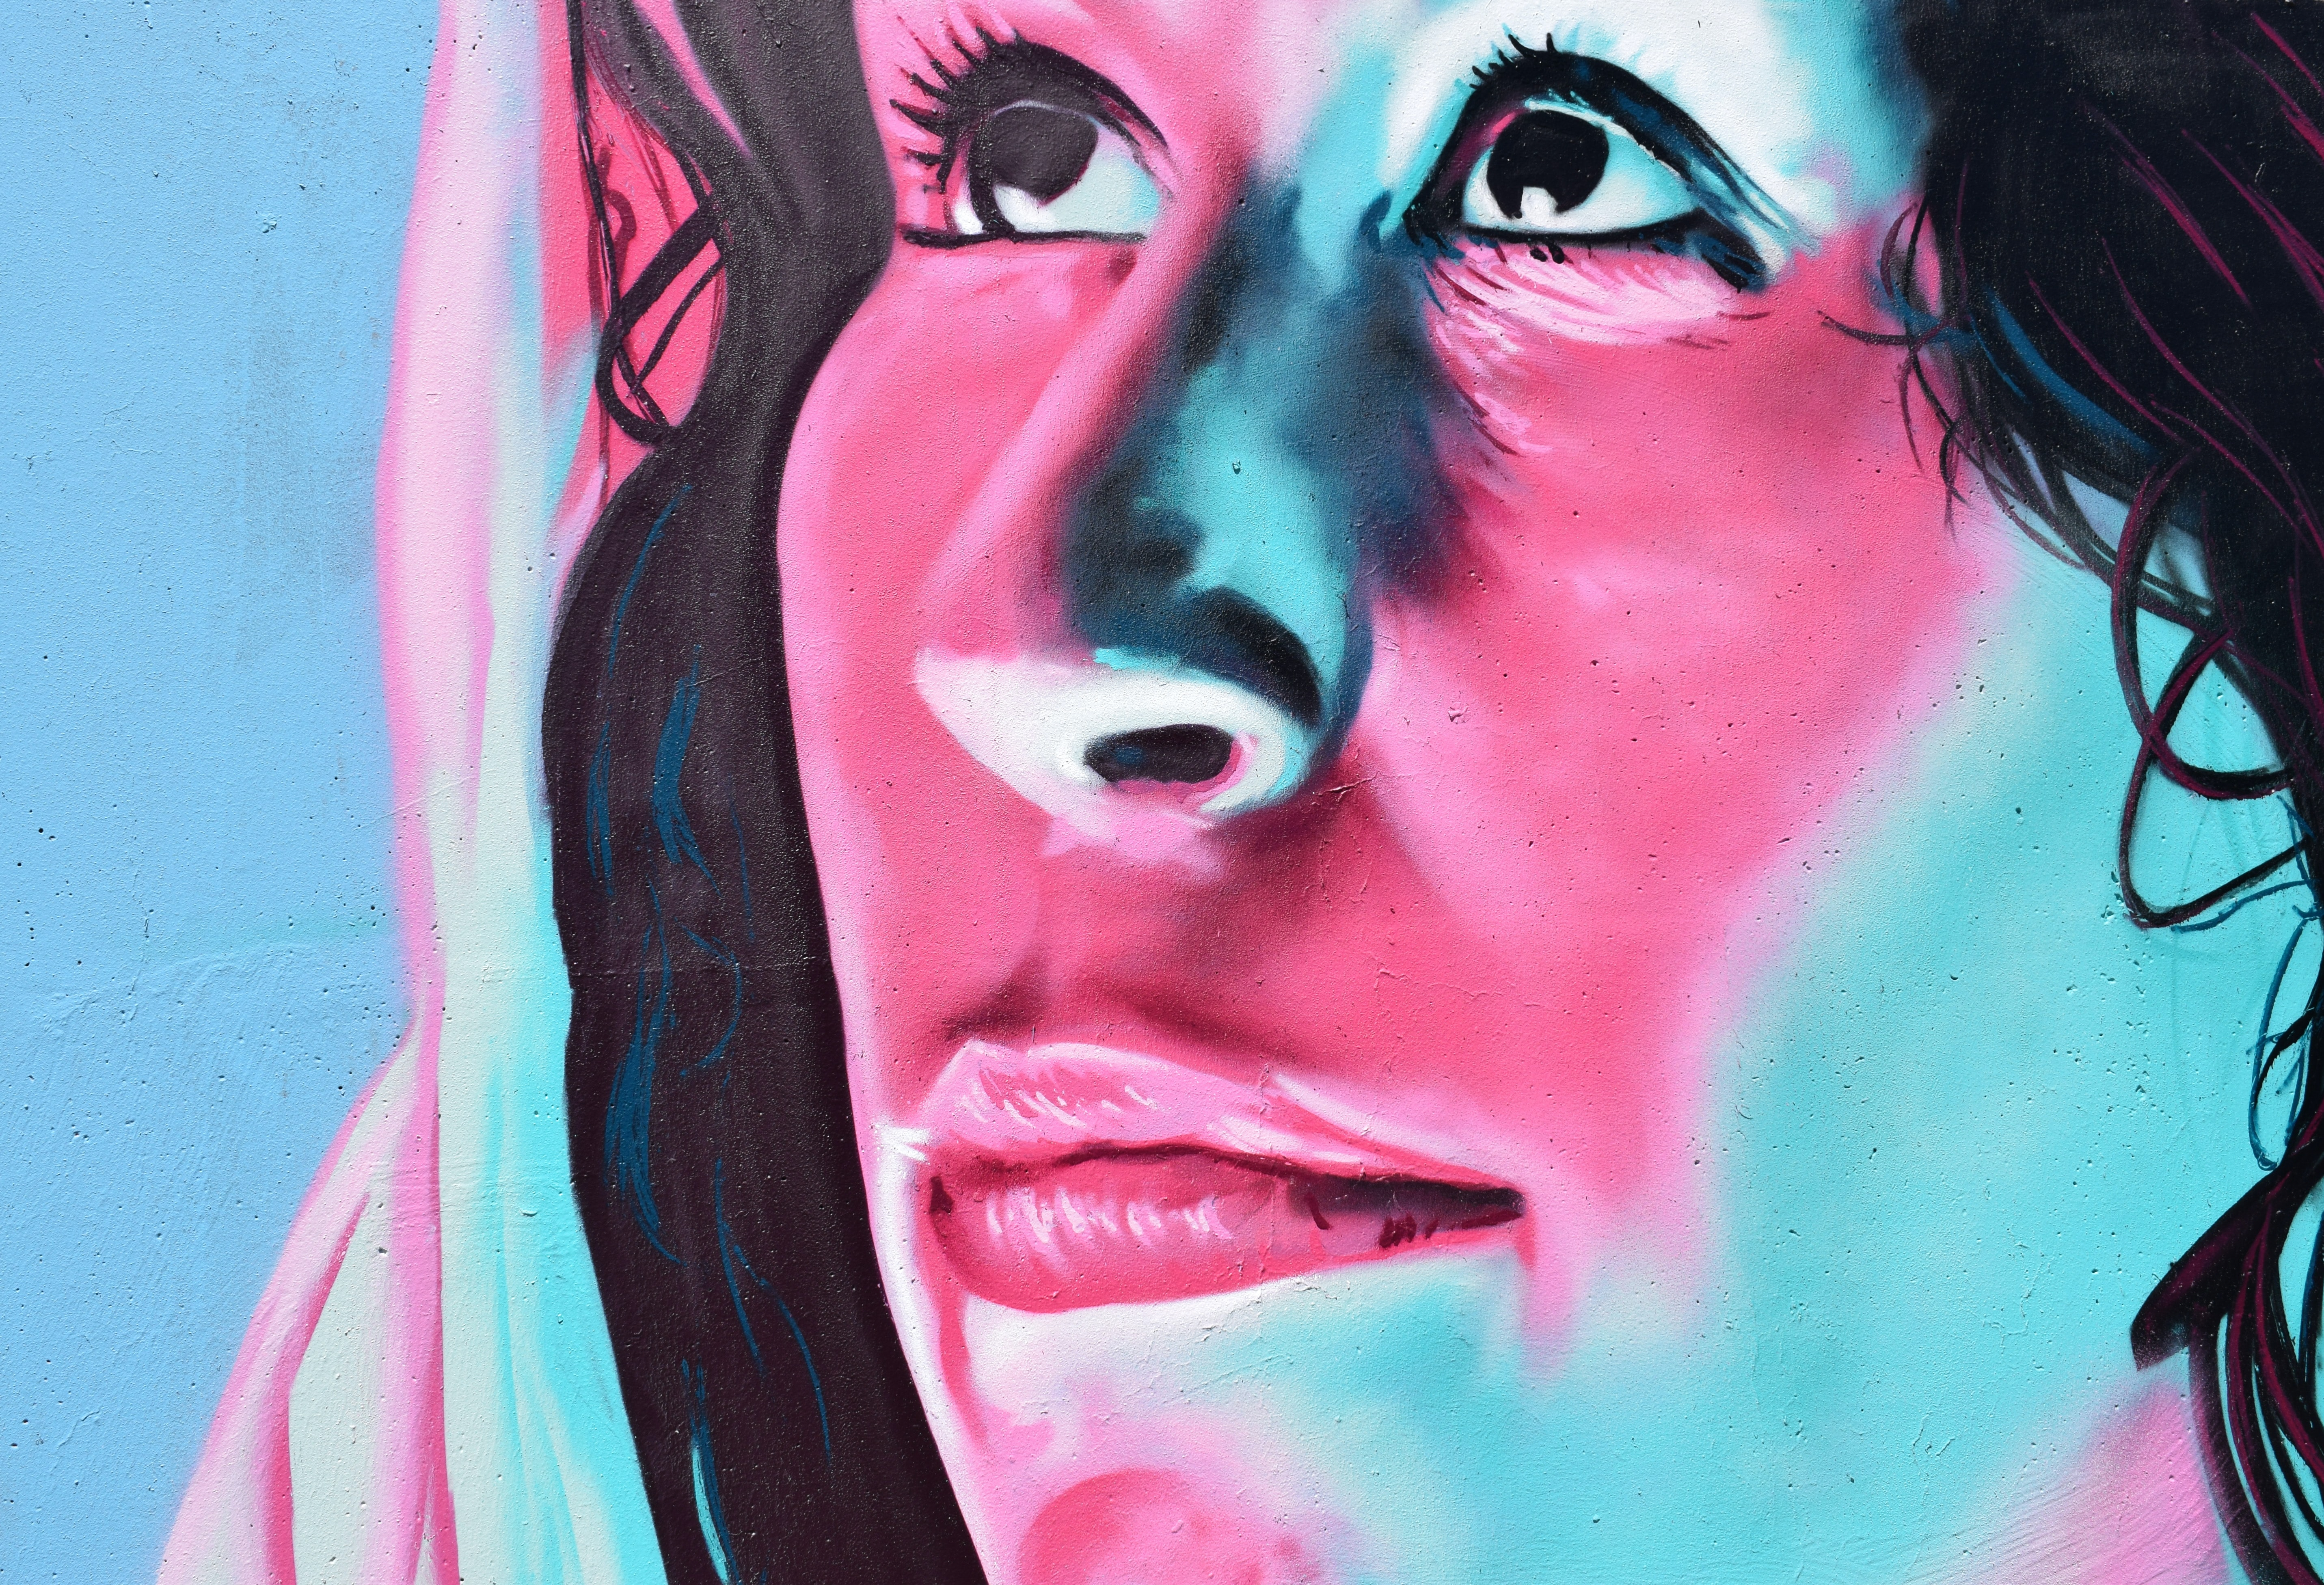 A mural of a woman's face in pink, blue, and black